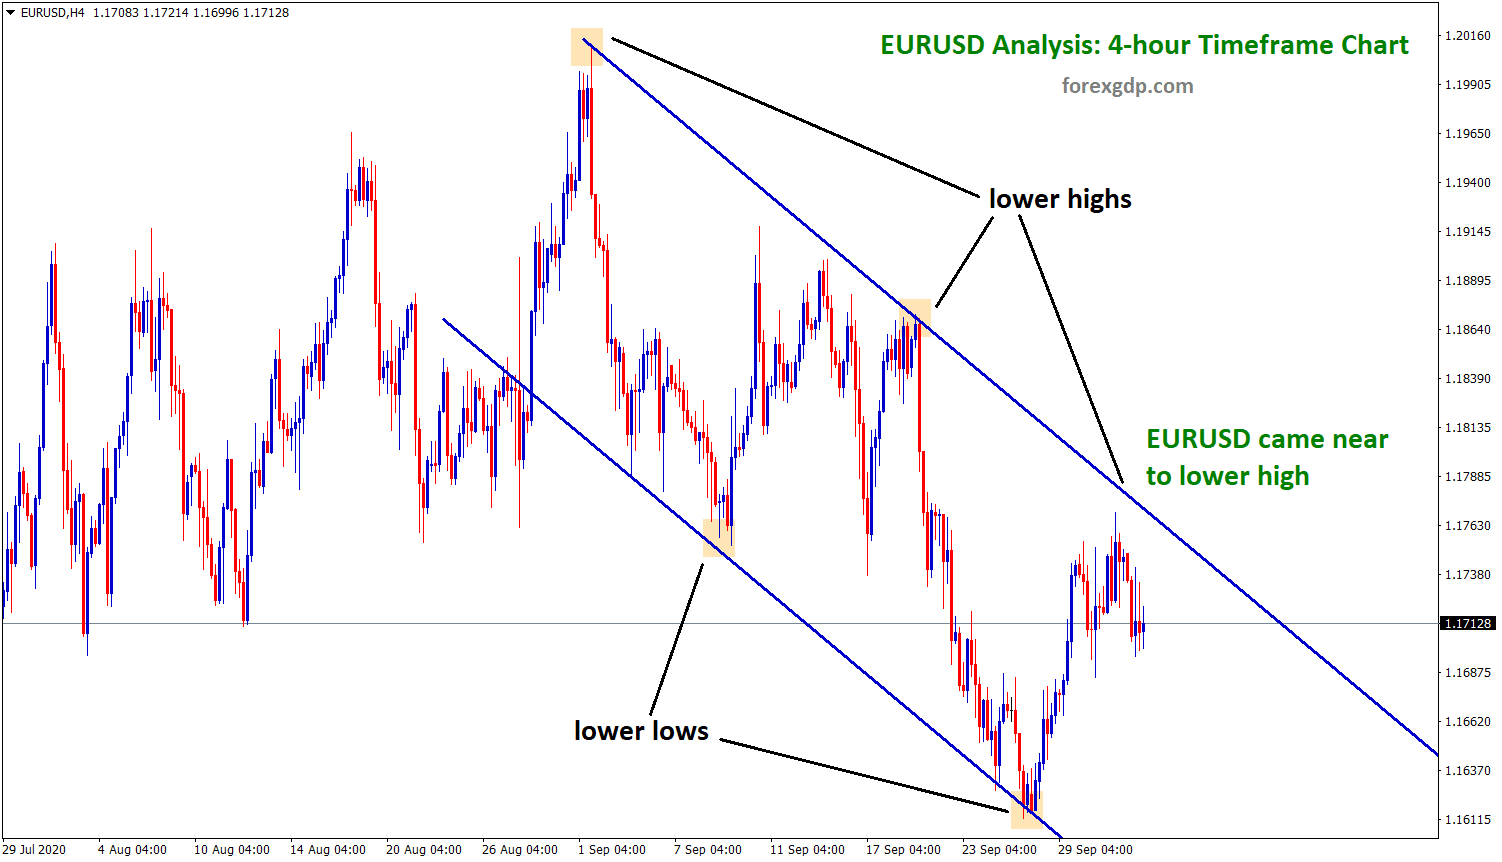 eurusd came near to lowe high in 4h